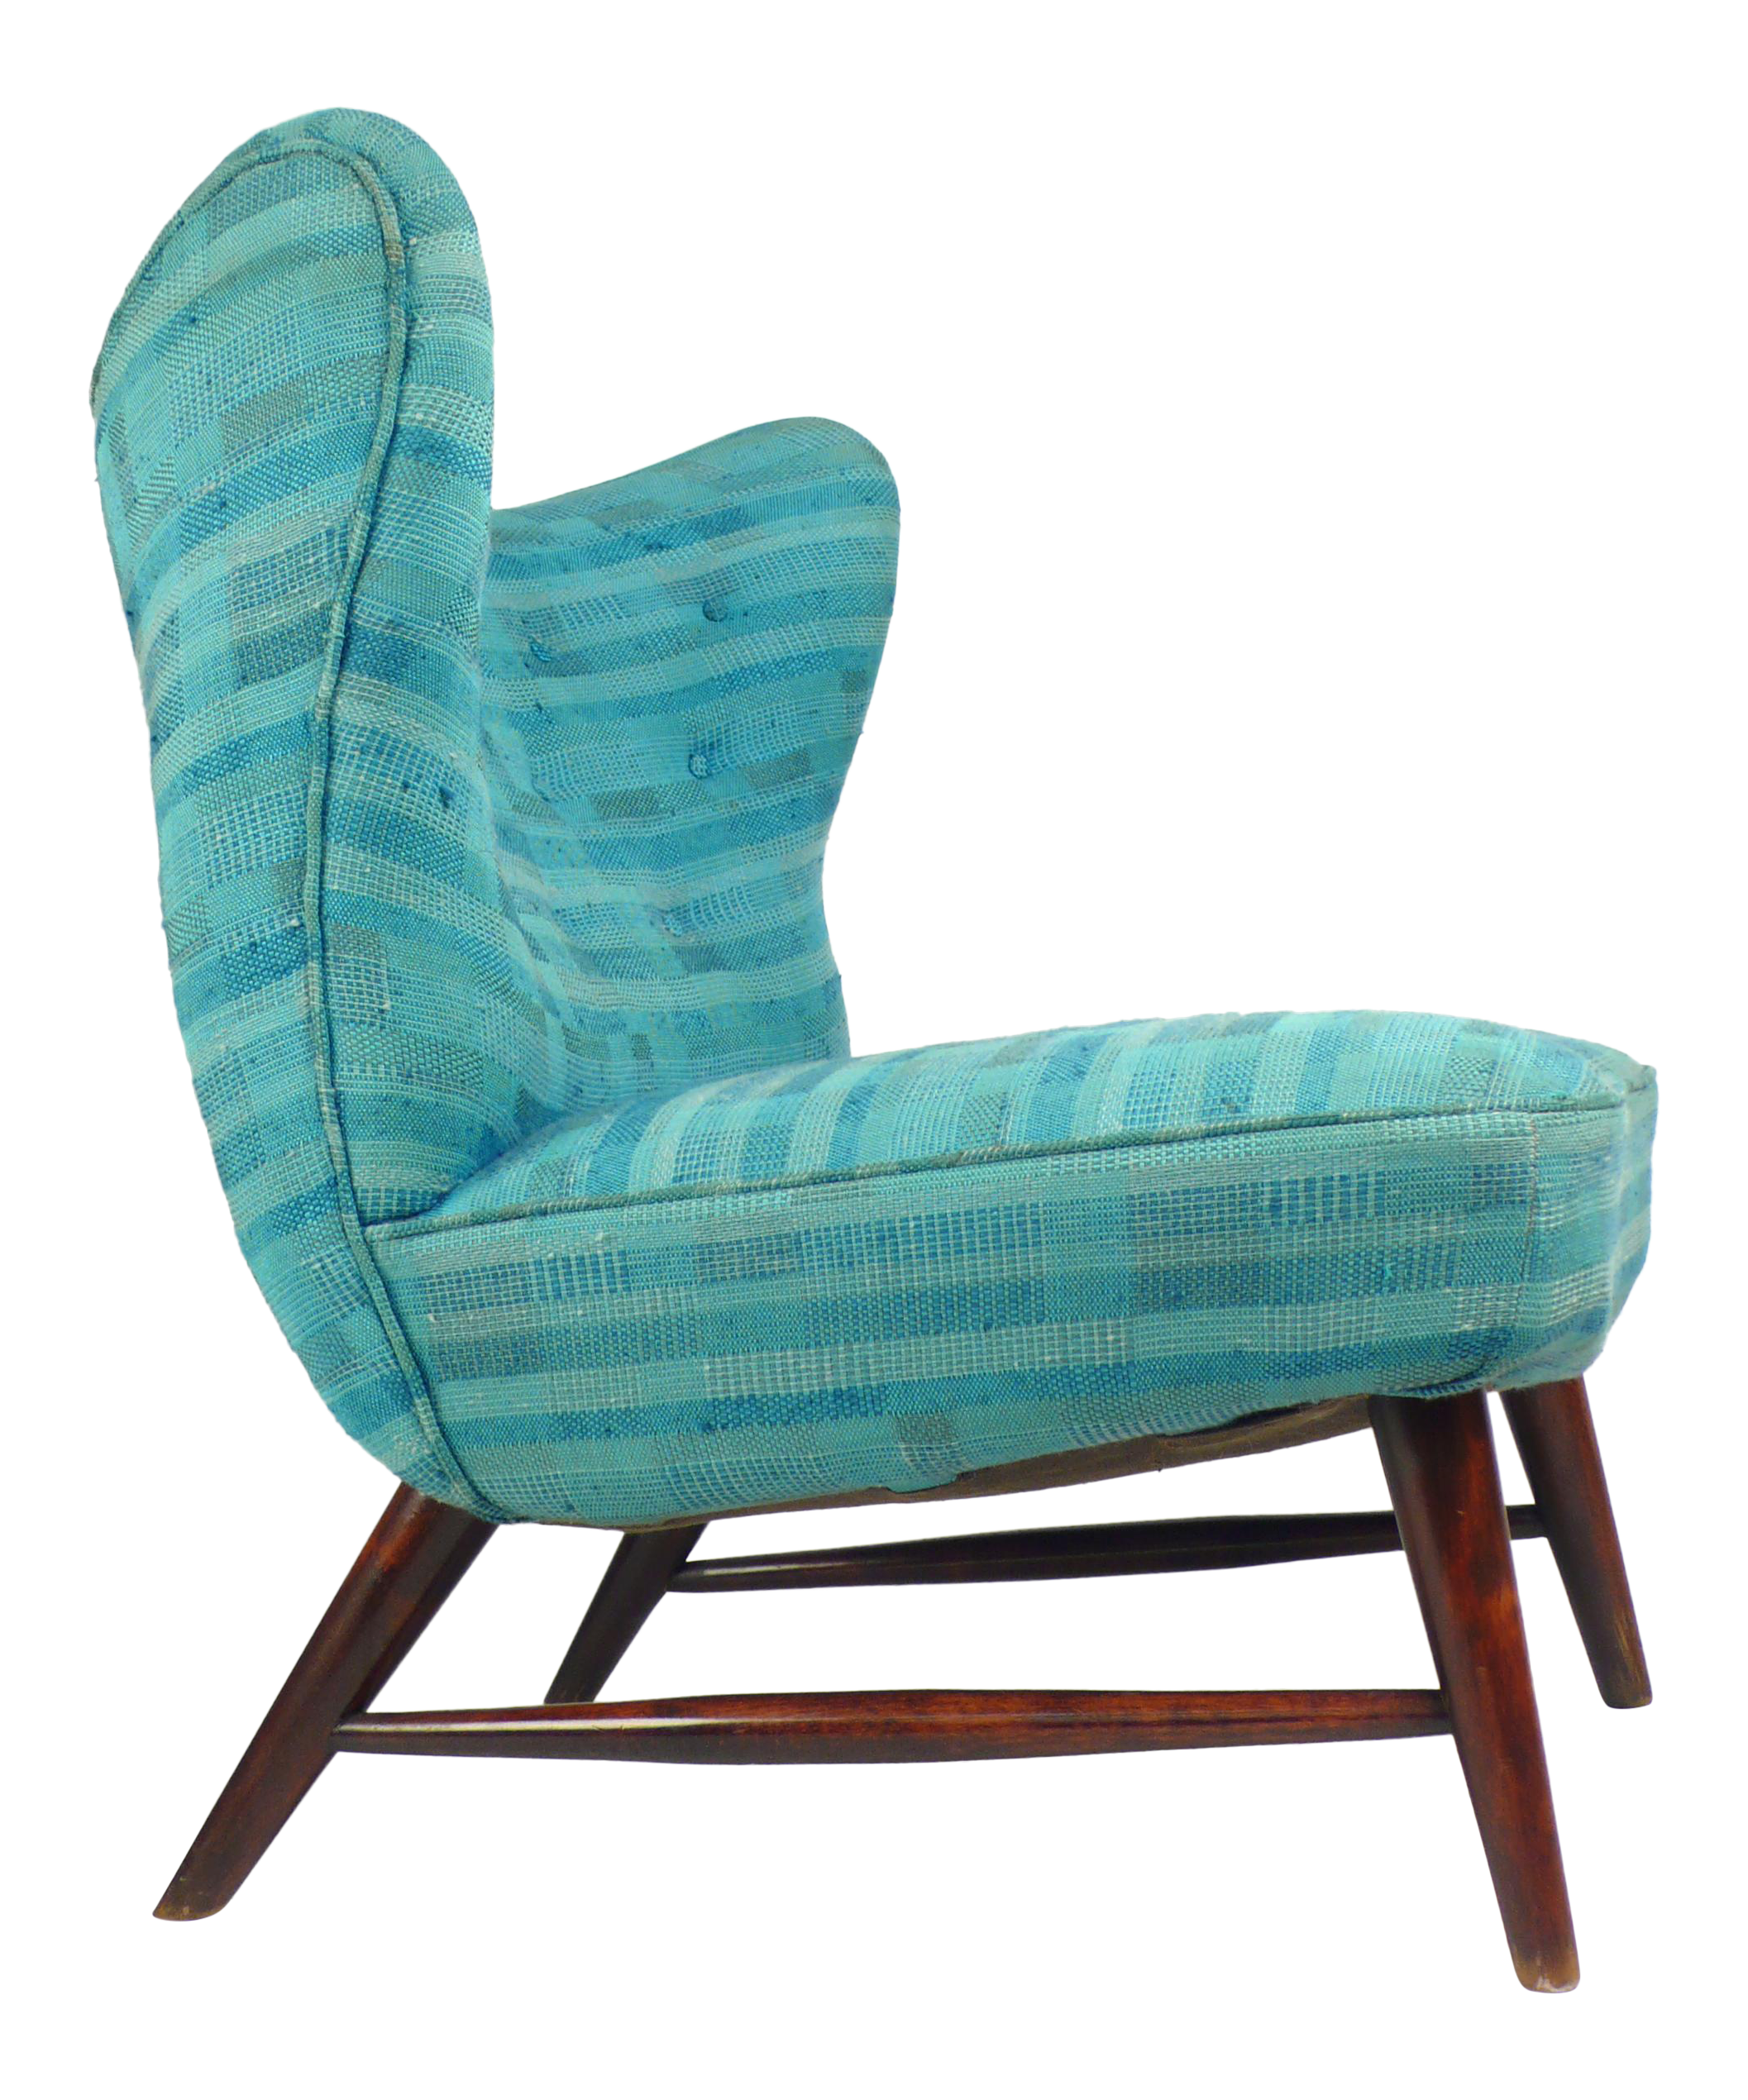 201 Armless Chair By Elias Svedberg   Image 1 Of 7